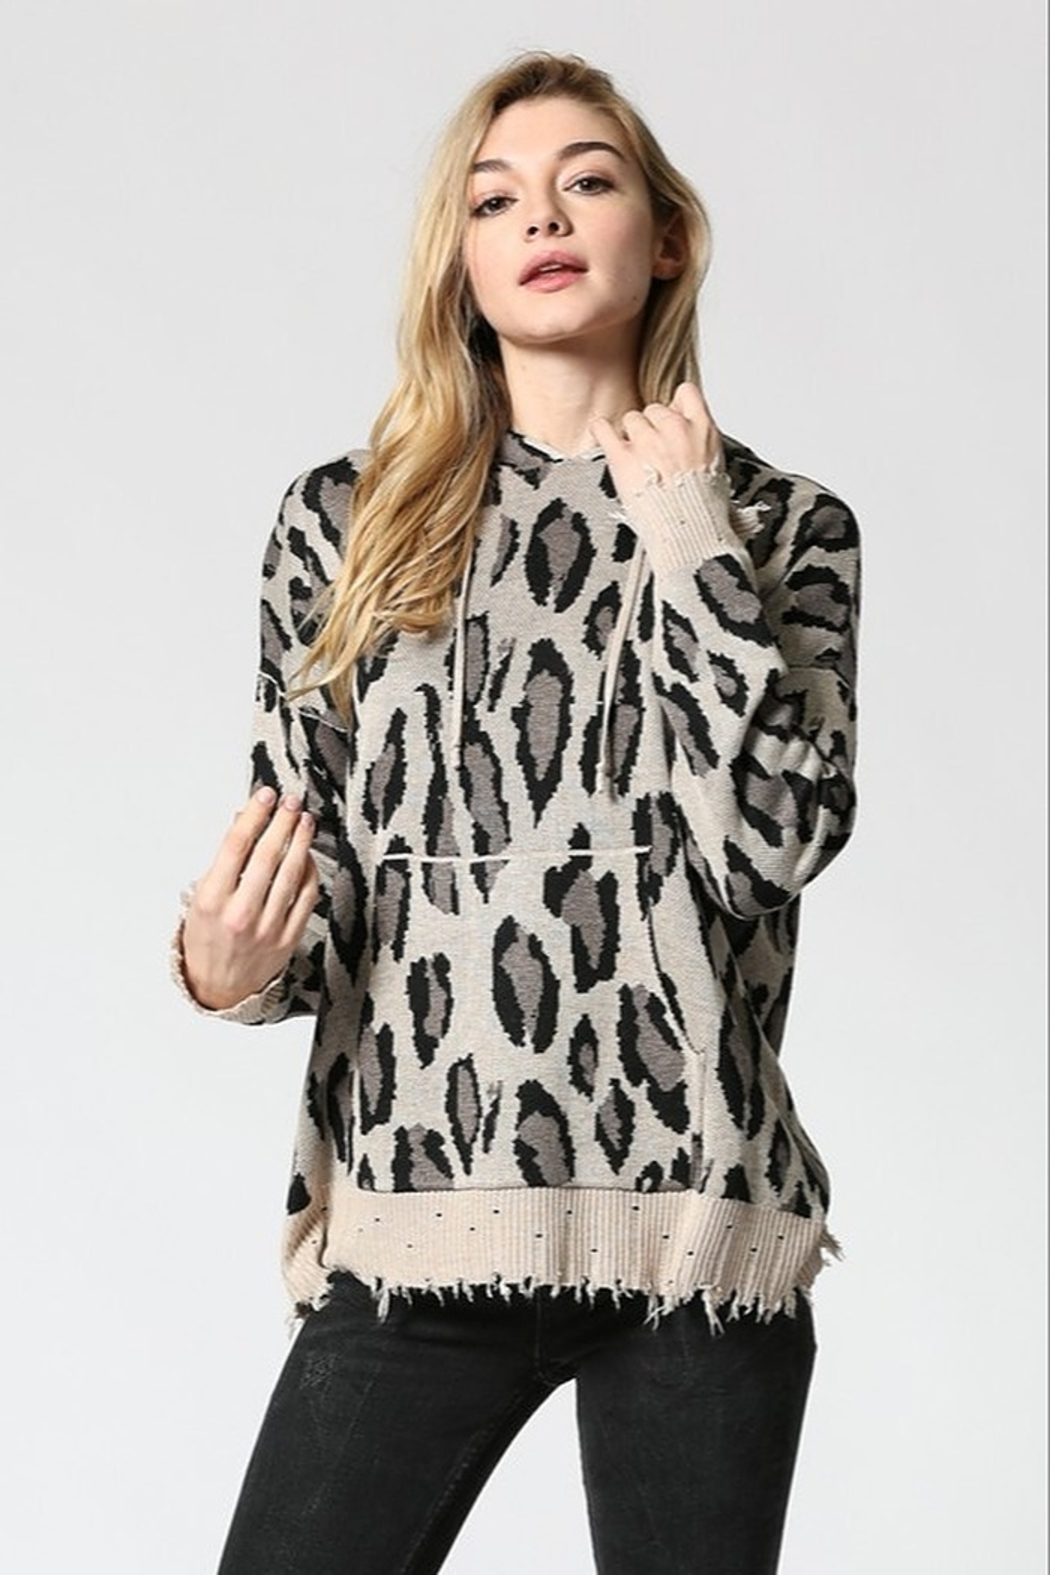 FATE by LFD Leopard patterened hoodie sweater - Side Cropped Image